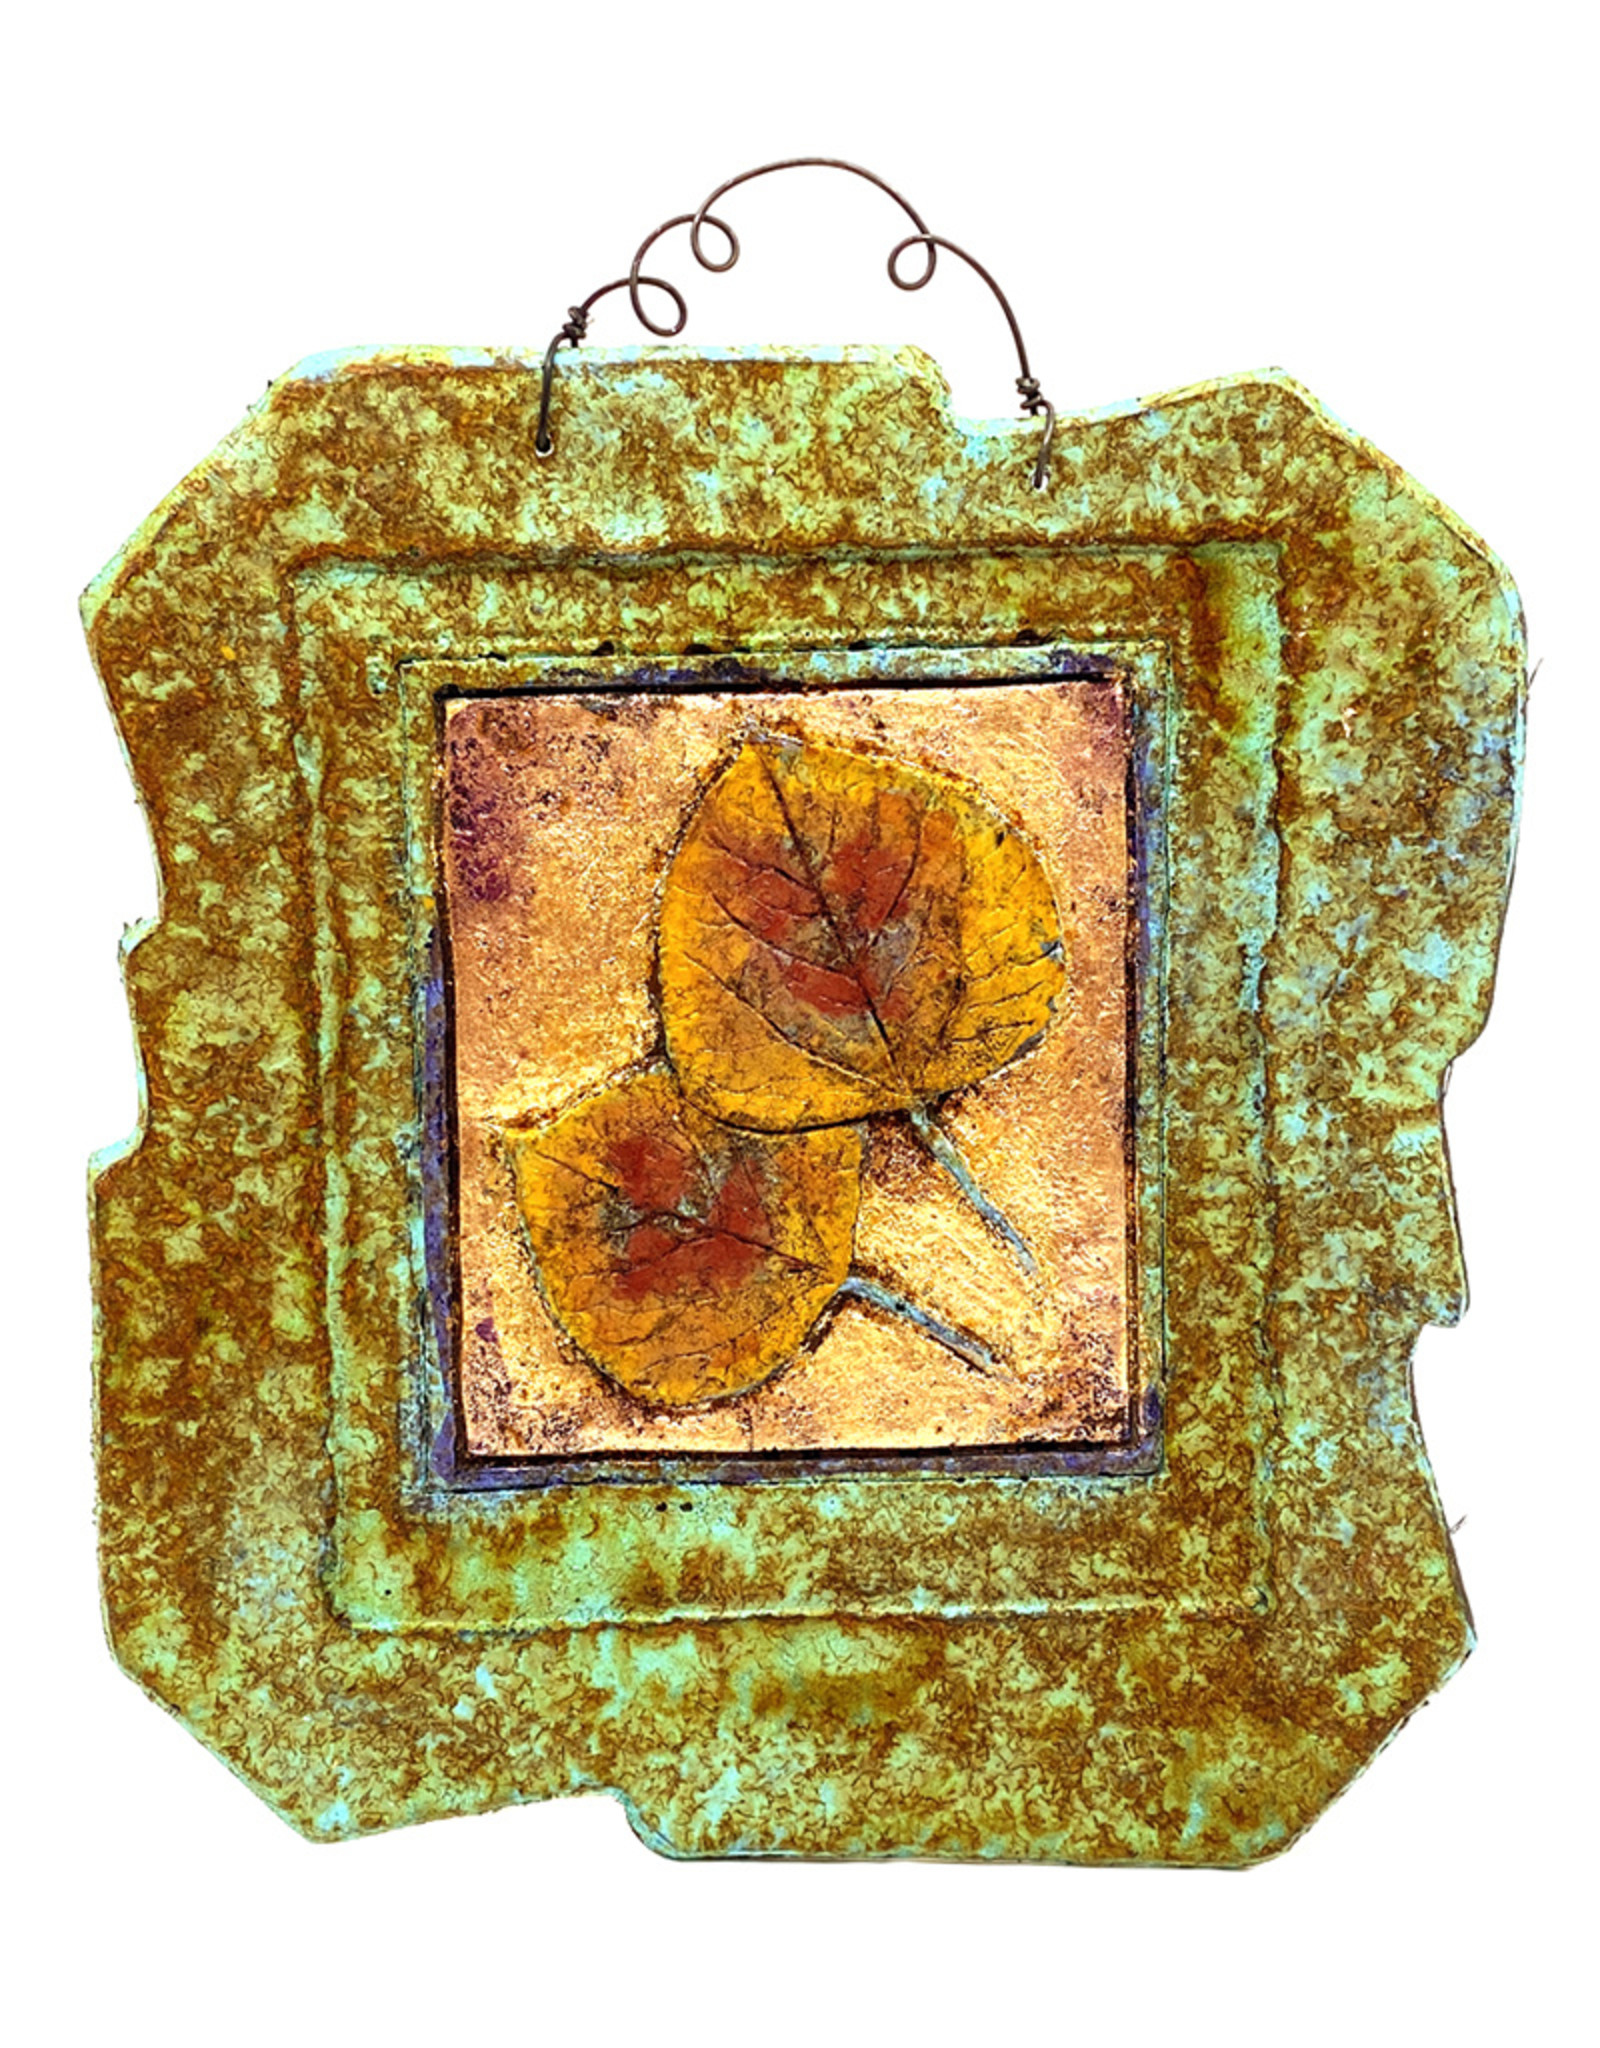 PAPER & STONE ASPEN LEAVES WALL PLAQUE